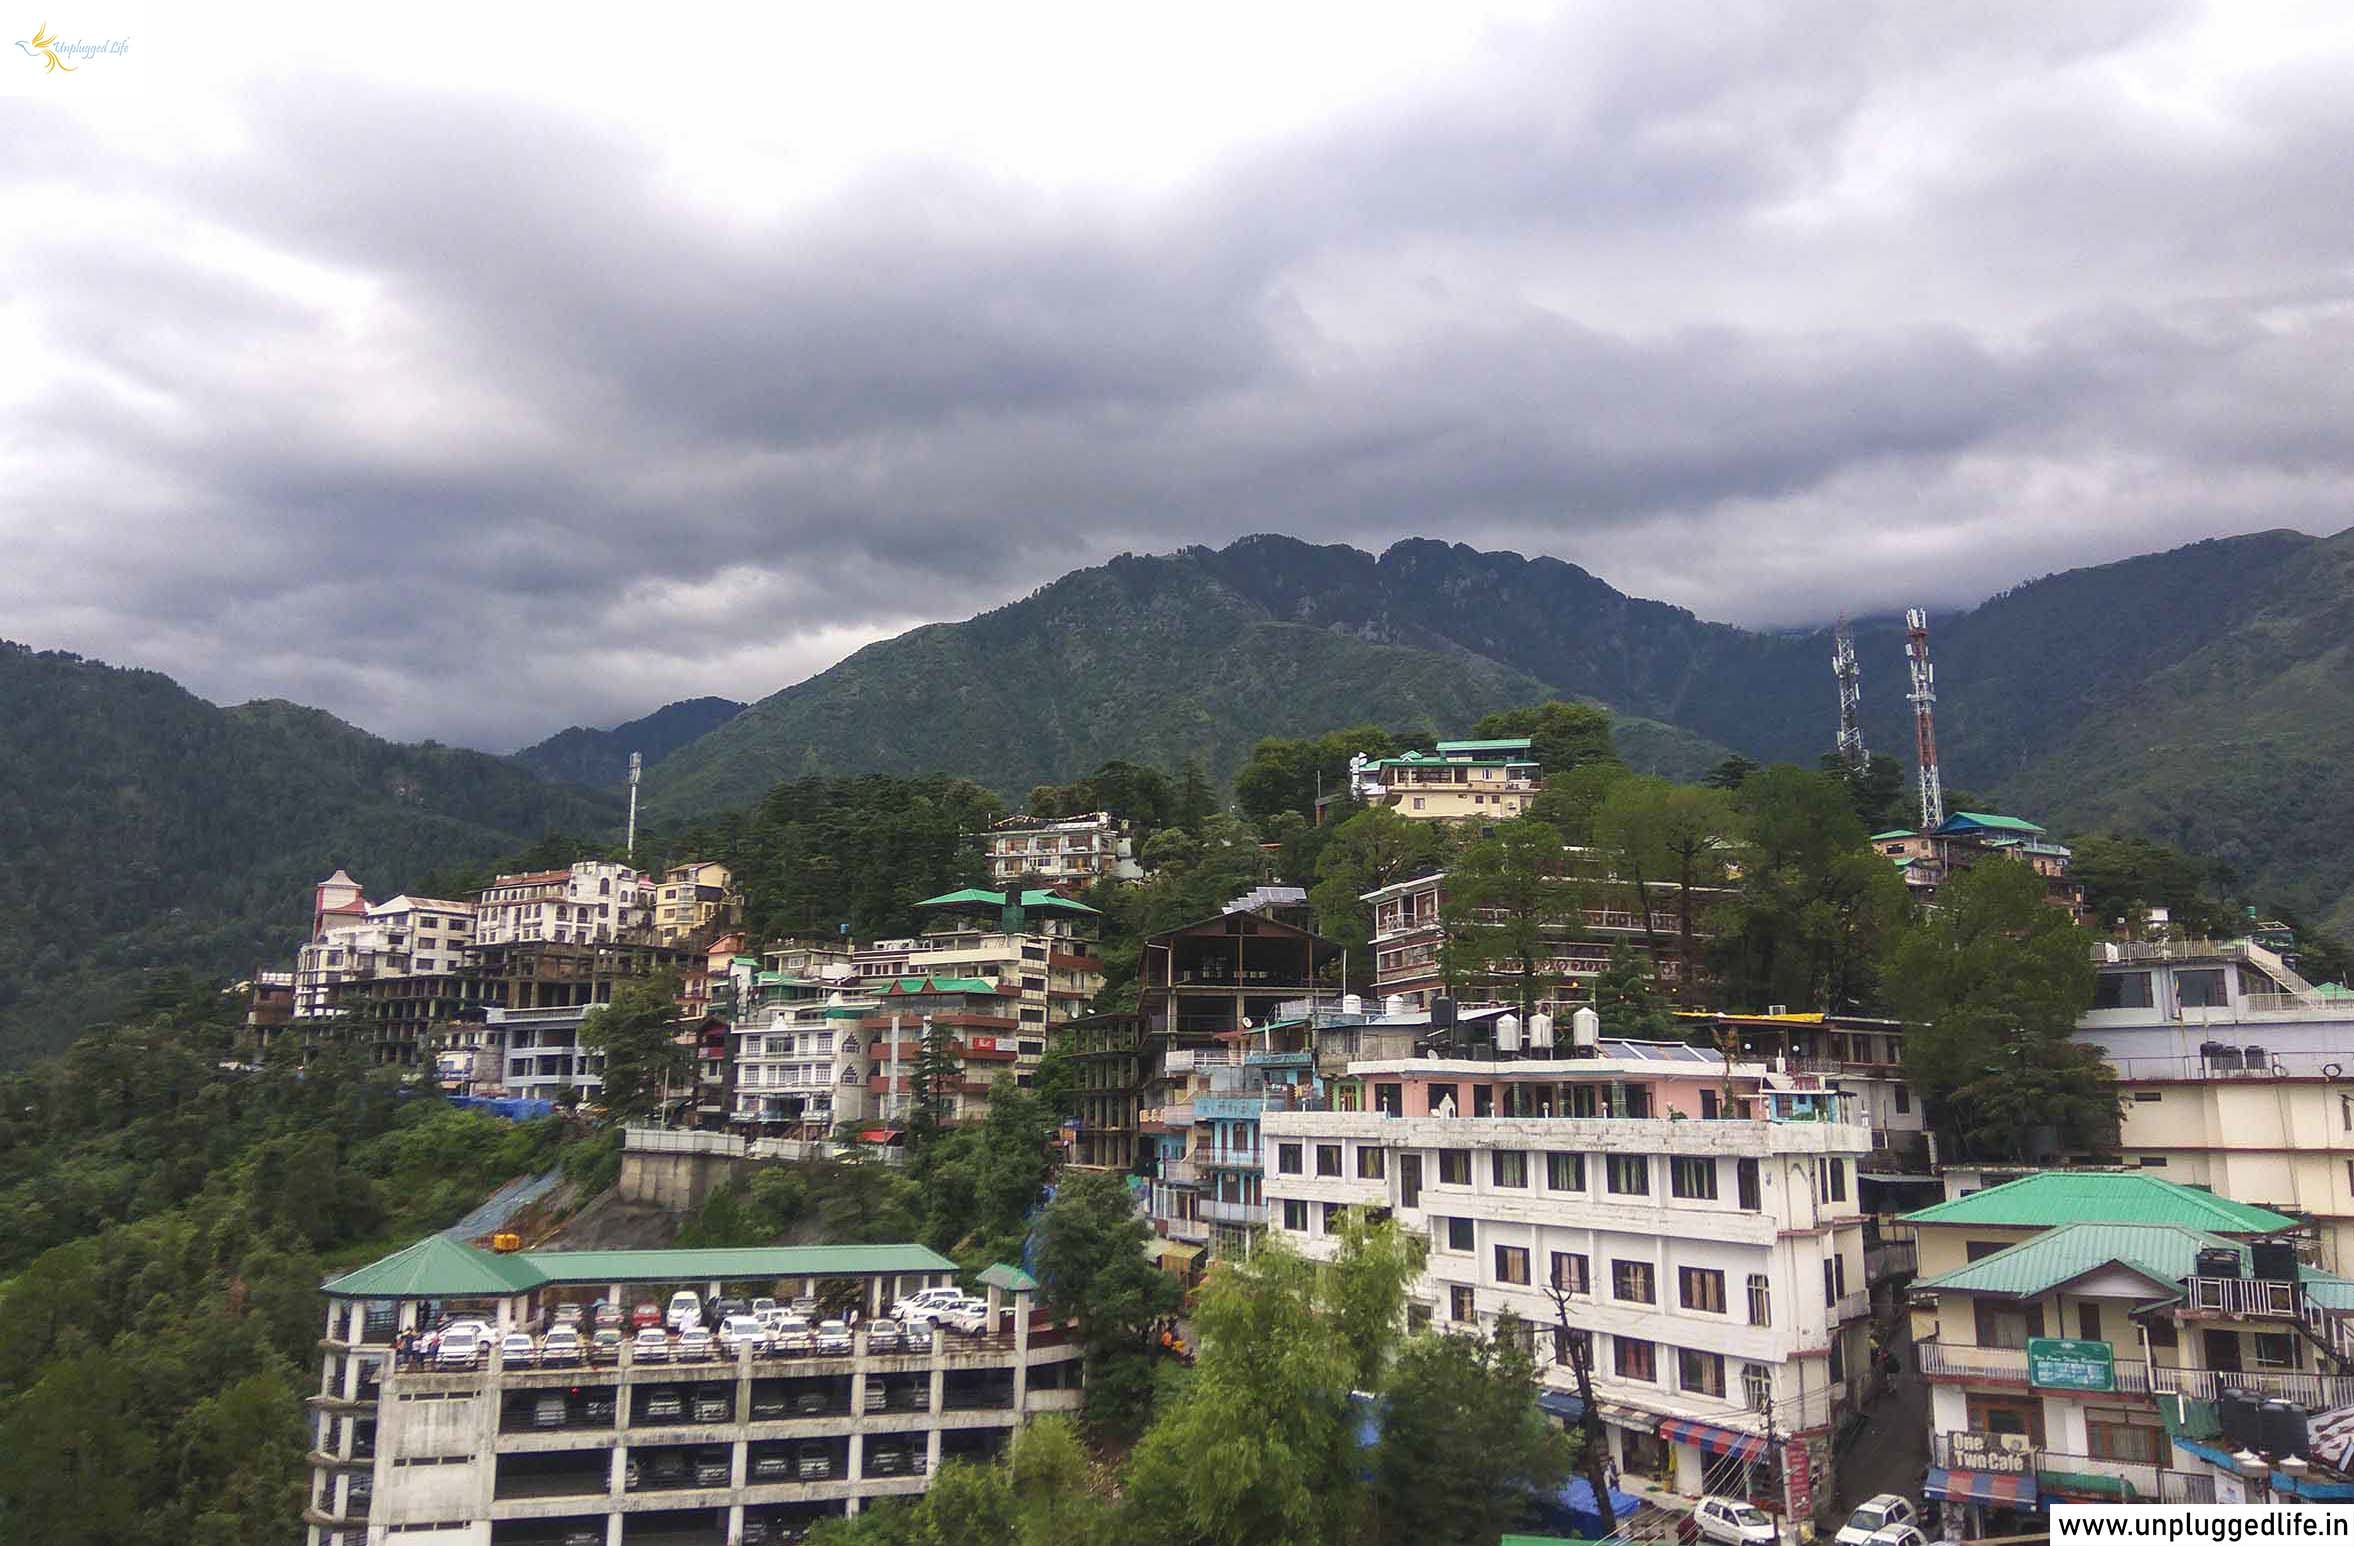 McLeod Ganj, Himachal Pradesh, Unplugged Life, Mountain View, Himachal Pradesh Tour Packages, Dharamshala Itinerary, Himachal Pradesh Itinerary, Amritsar to Dalhousie, Amritsar to Dharamshala, Dharamshala to Dalhousie